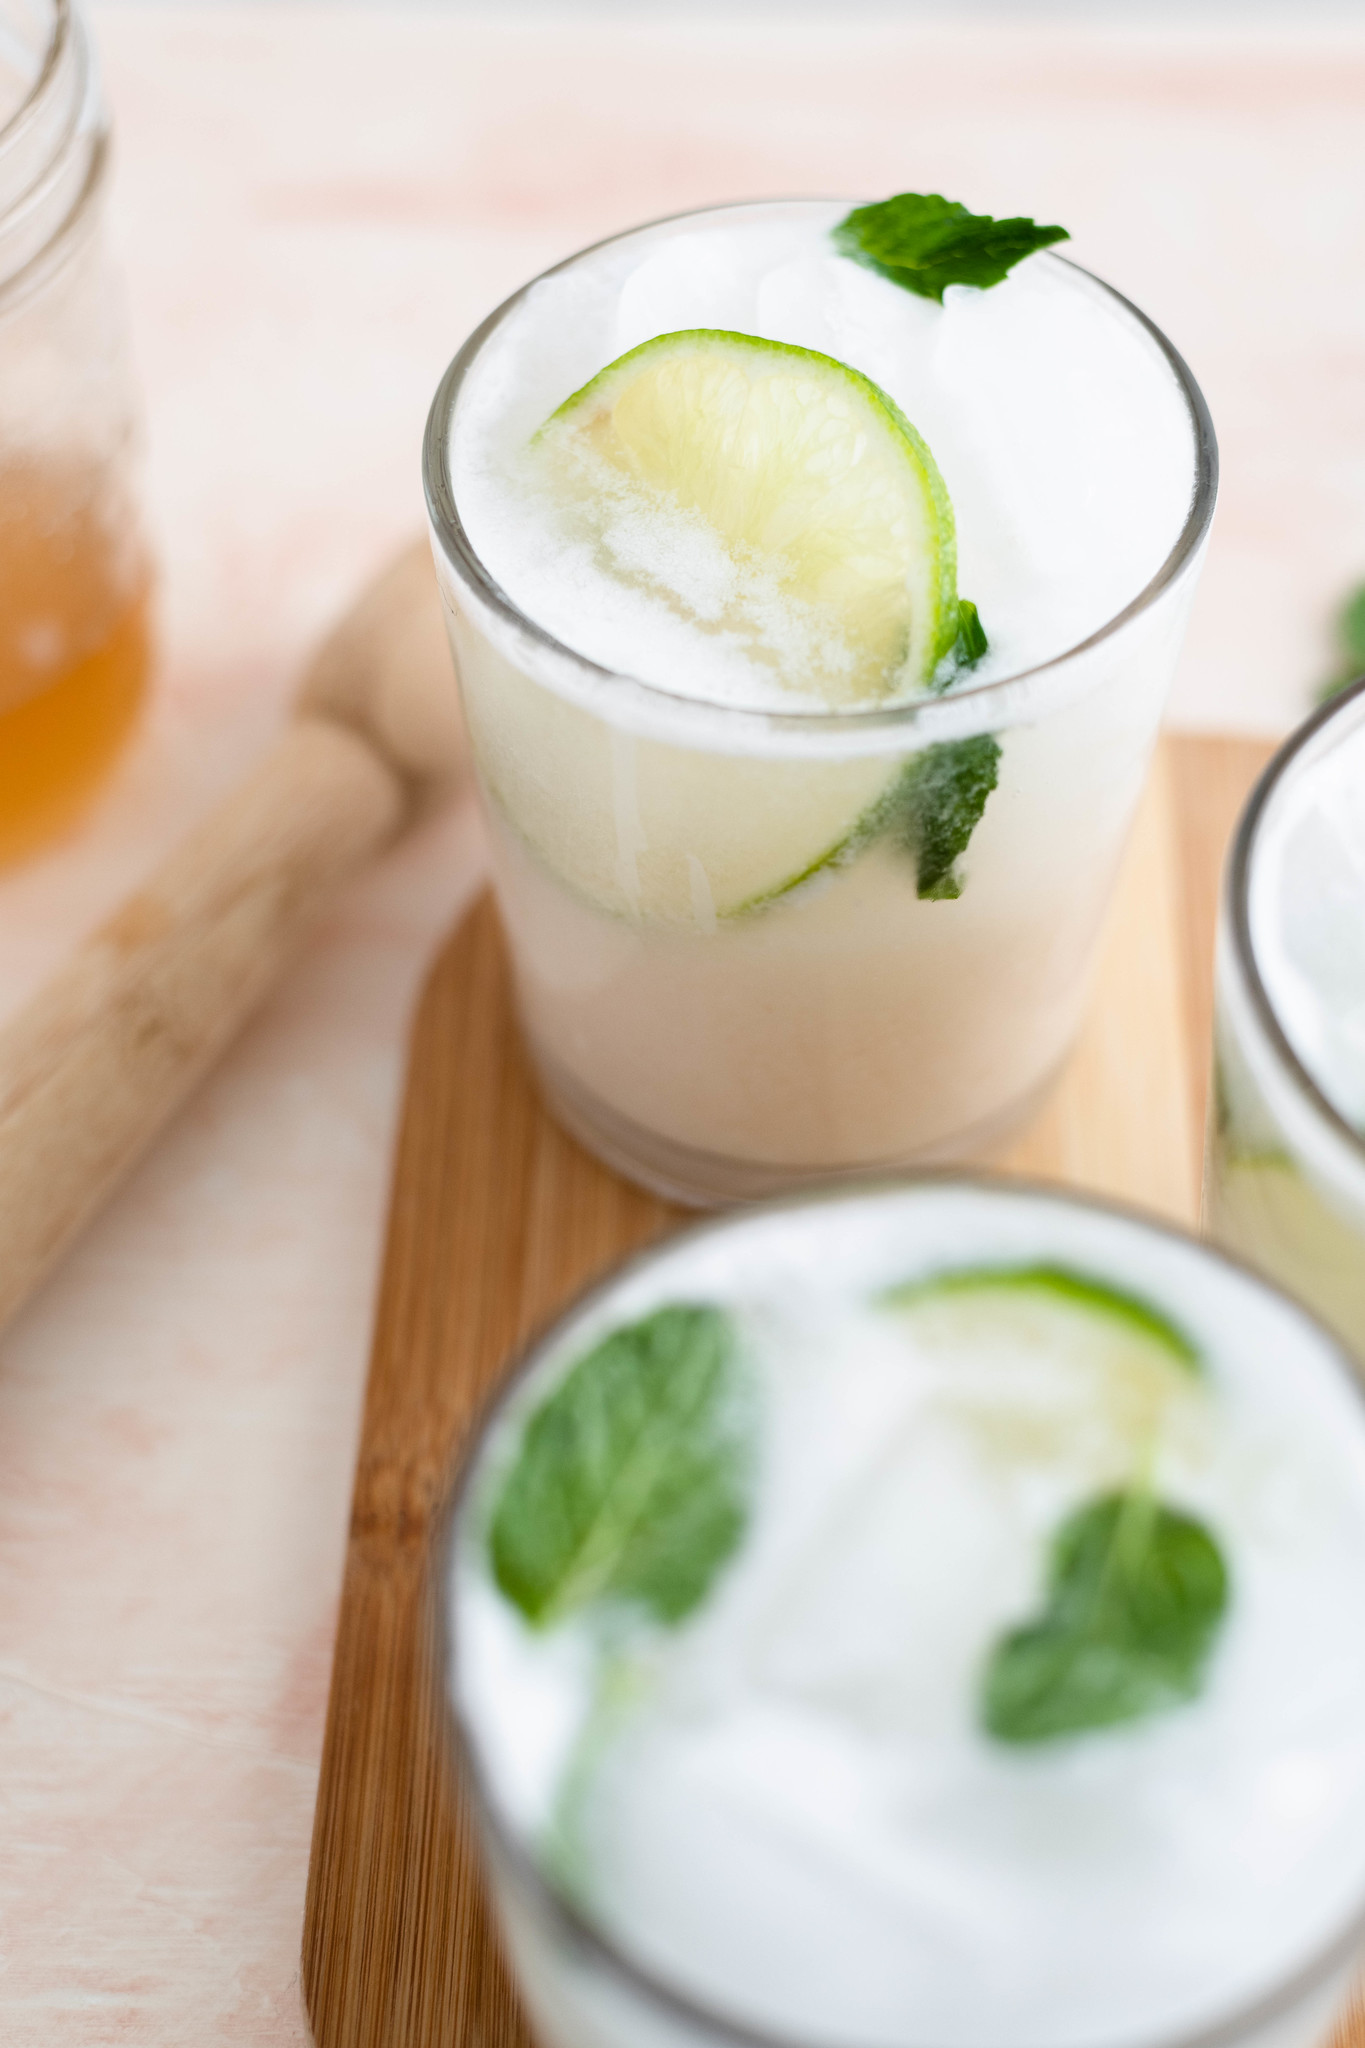 Mix up a few Coconut Mojitos for the ultimate tropical vibes at home. Packed full of sweet coconut flavor, this drink will quickly become a summertime favorite.